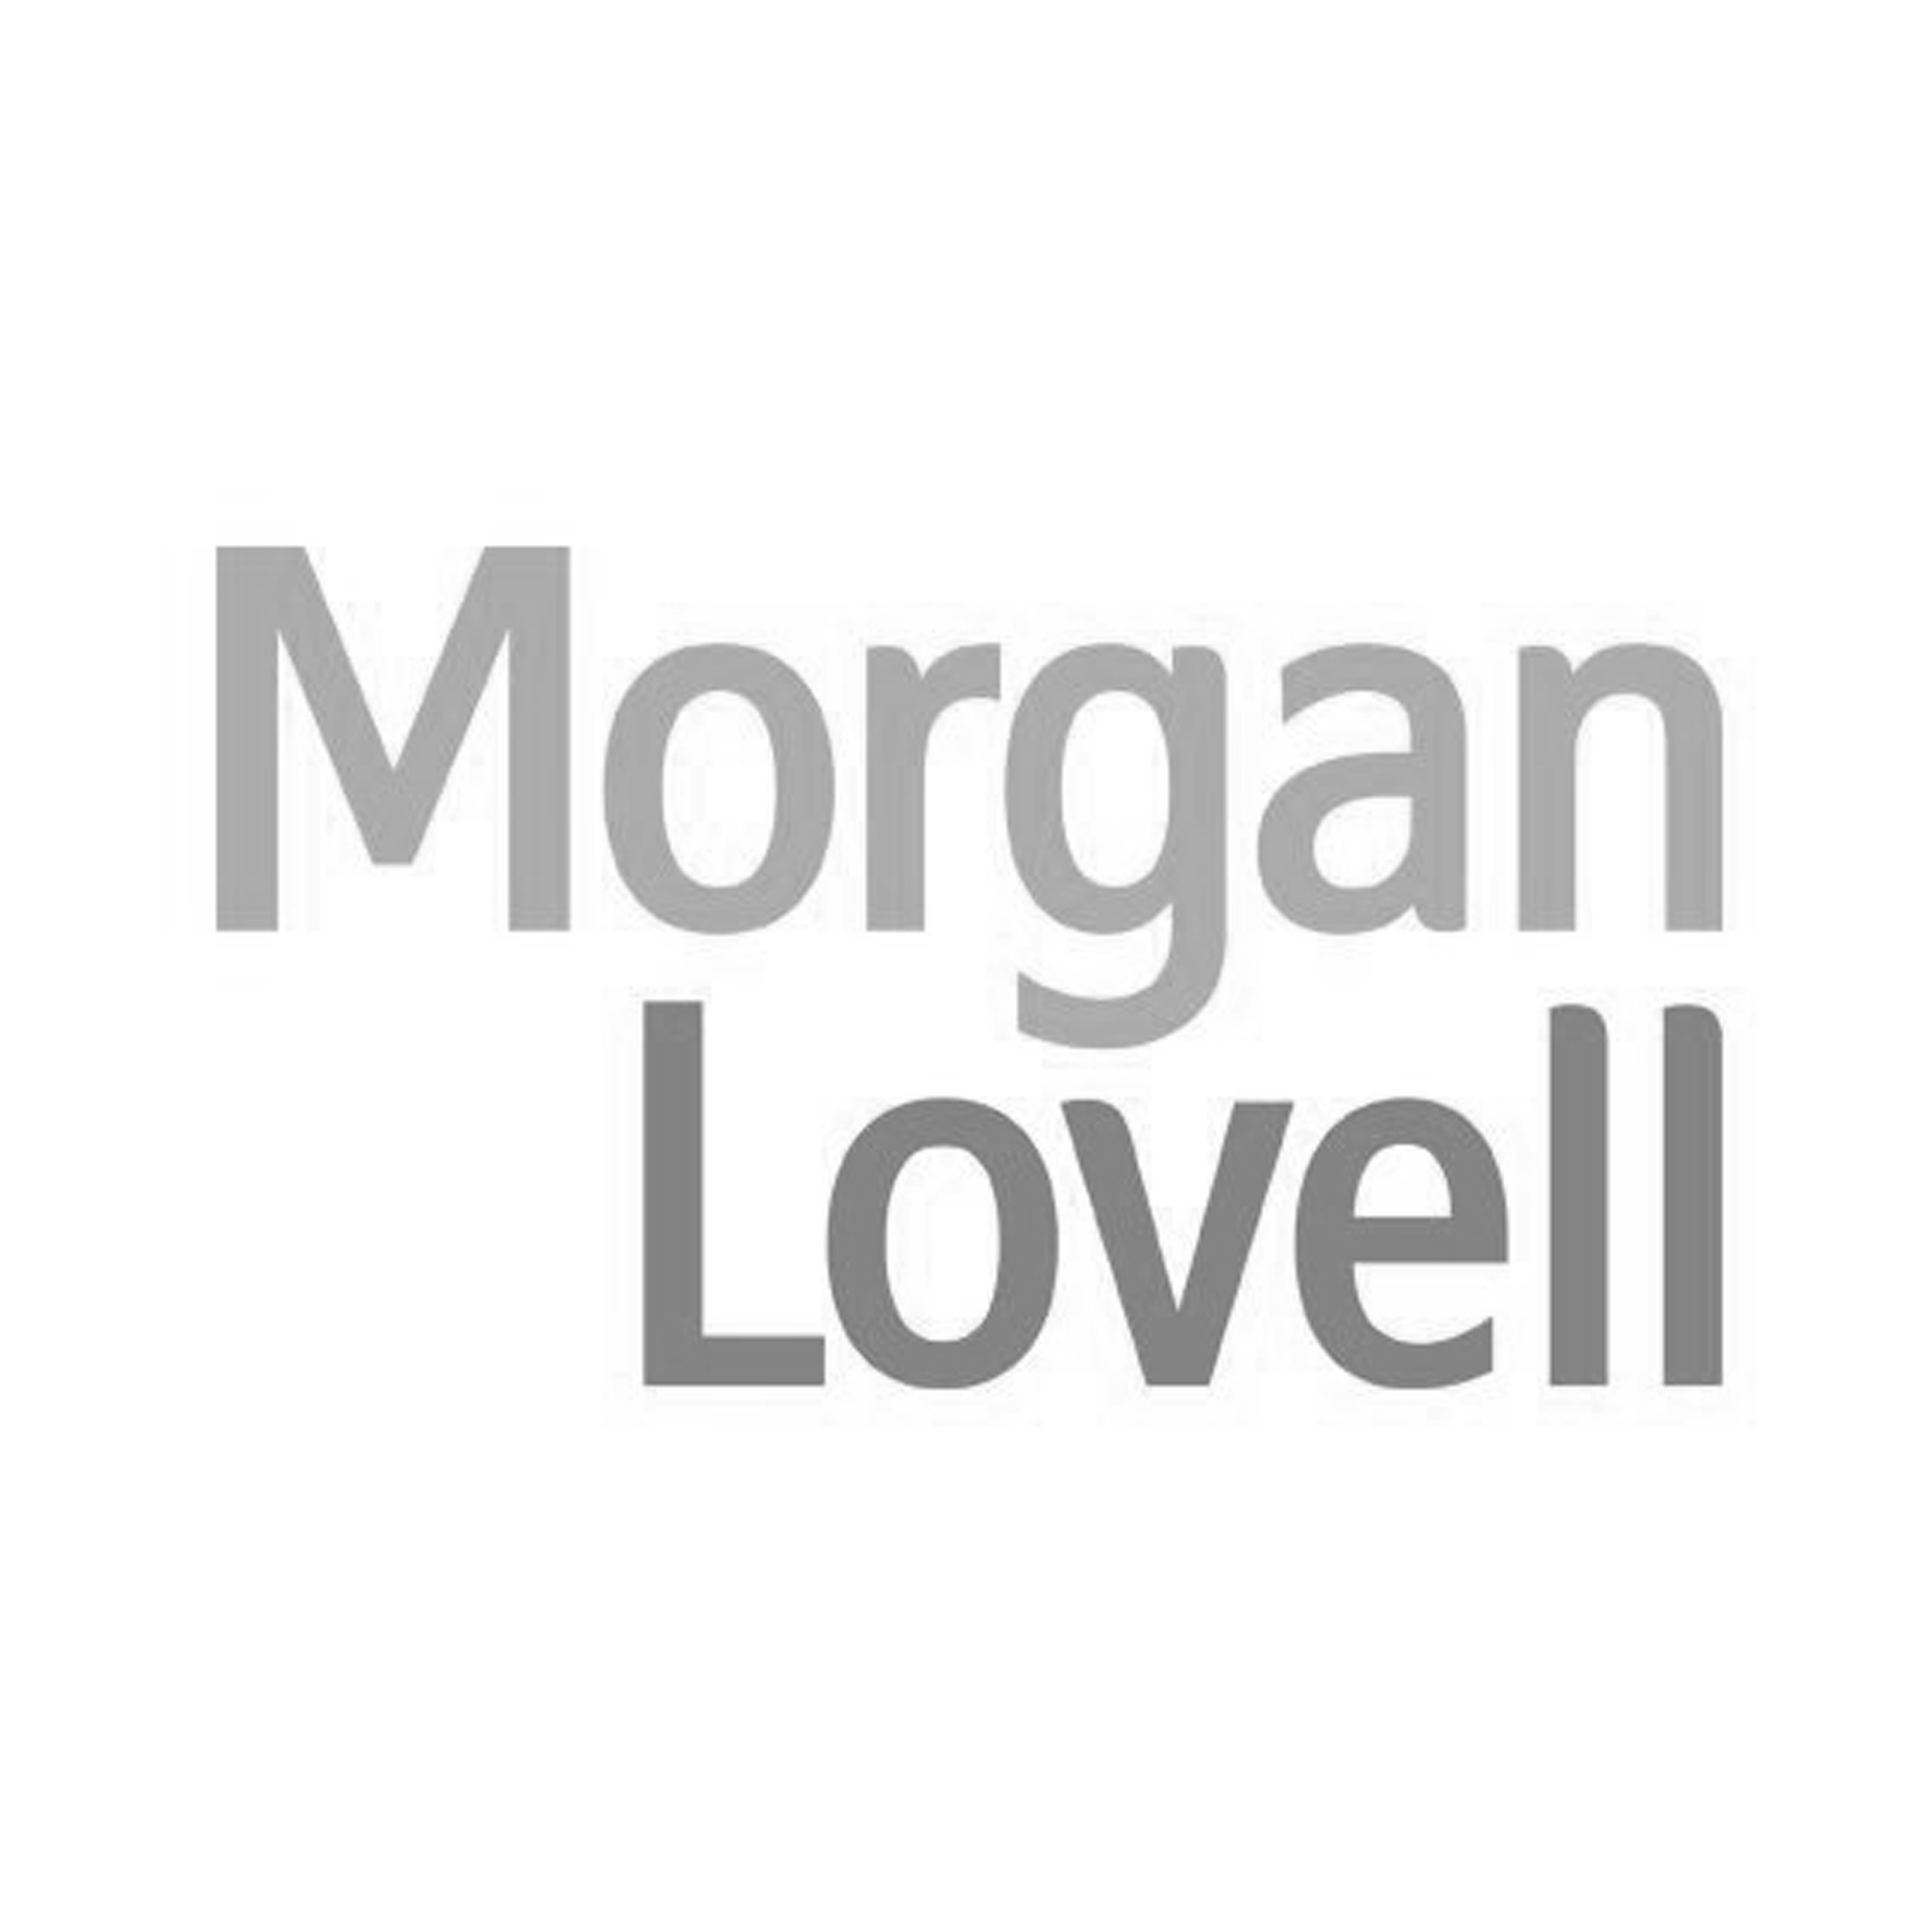 morgan lovell logo black and white.png